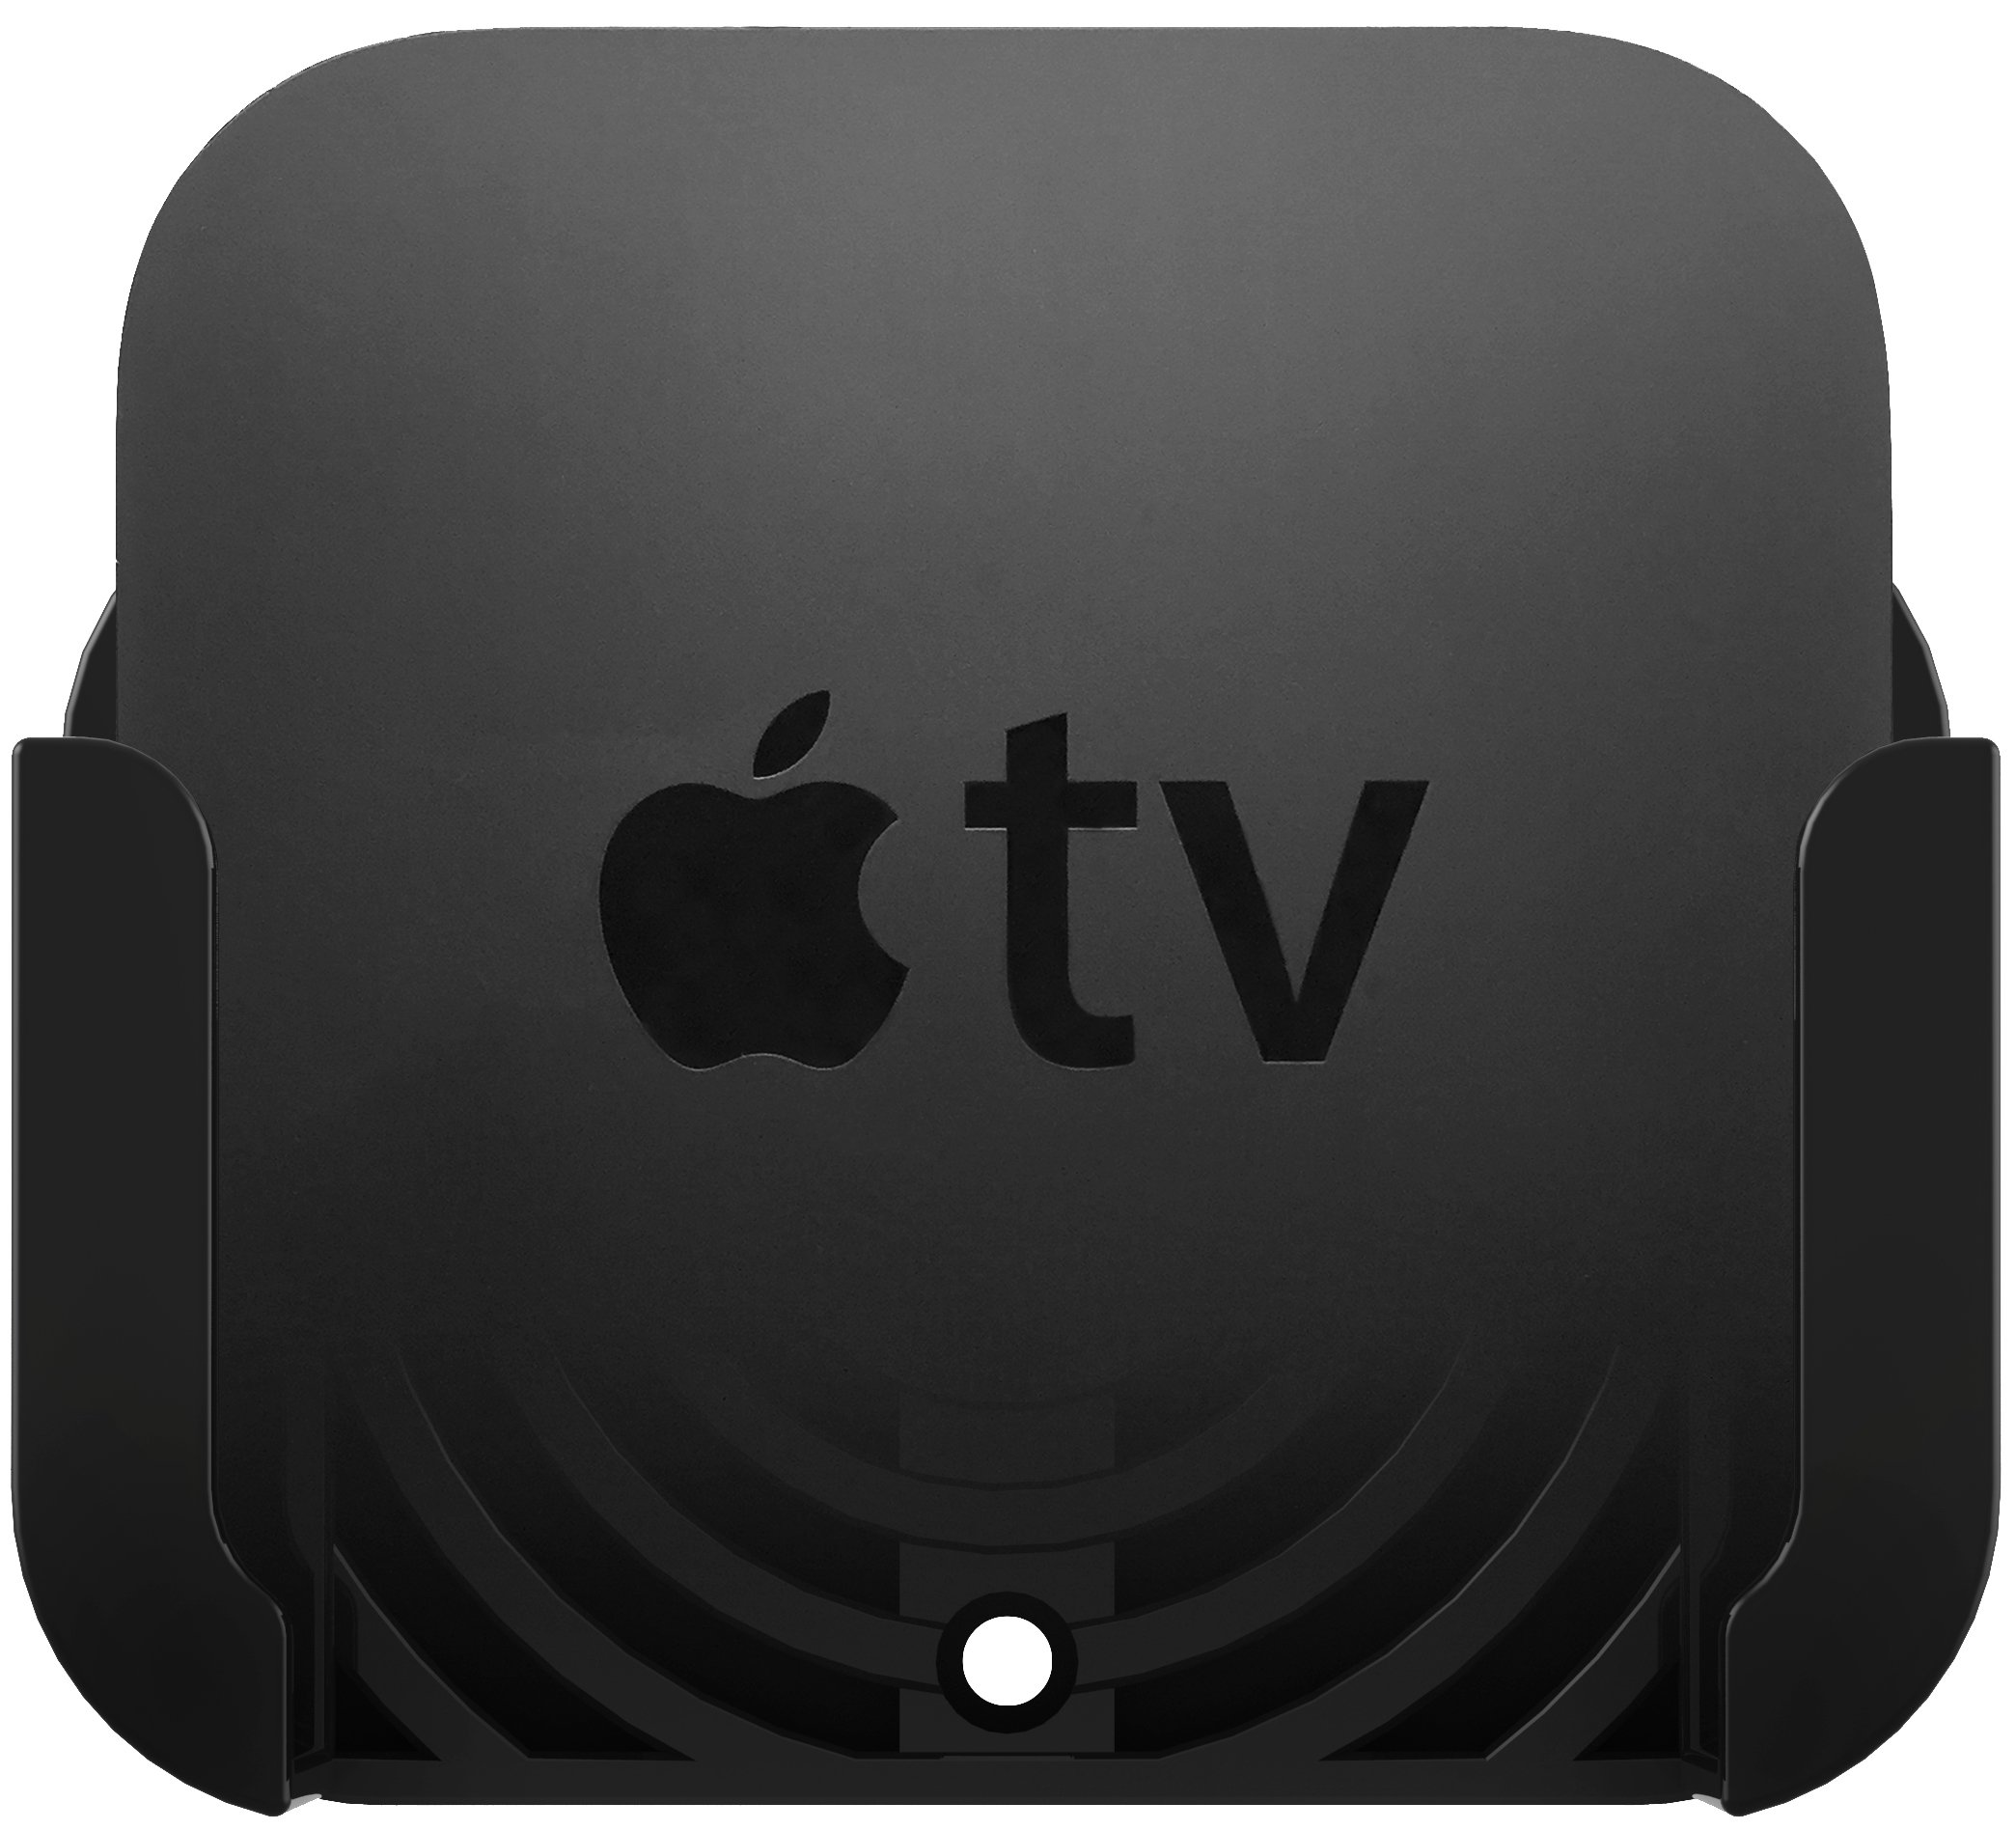 TotalMount Apple TV Mount - Compatible with all Apple TVs including Apple TV 4K by TotalMount